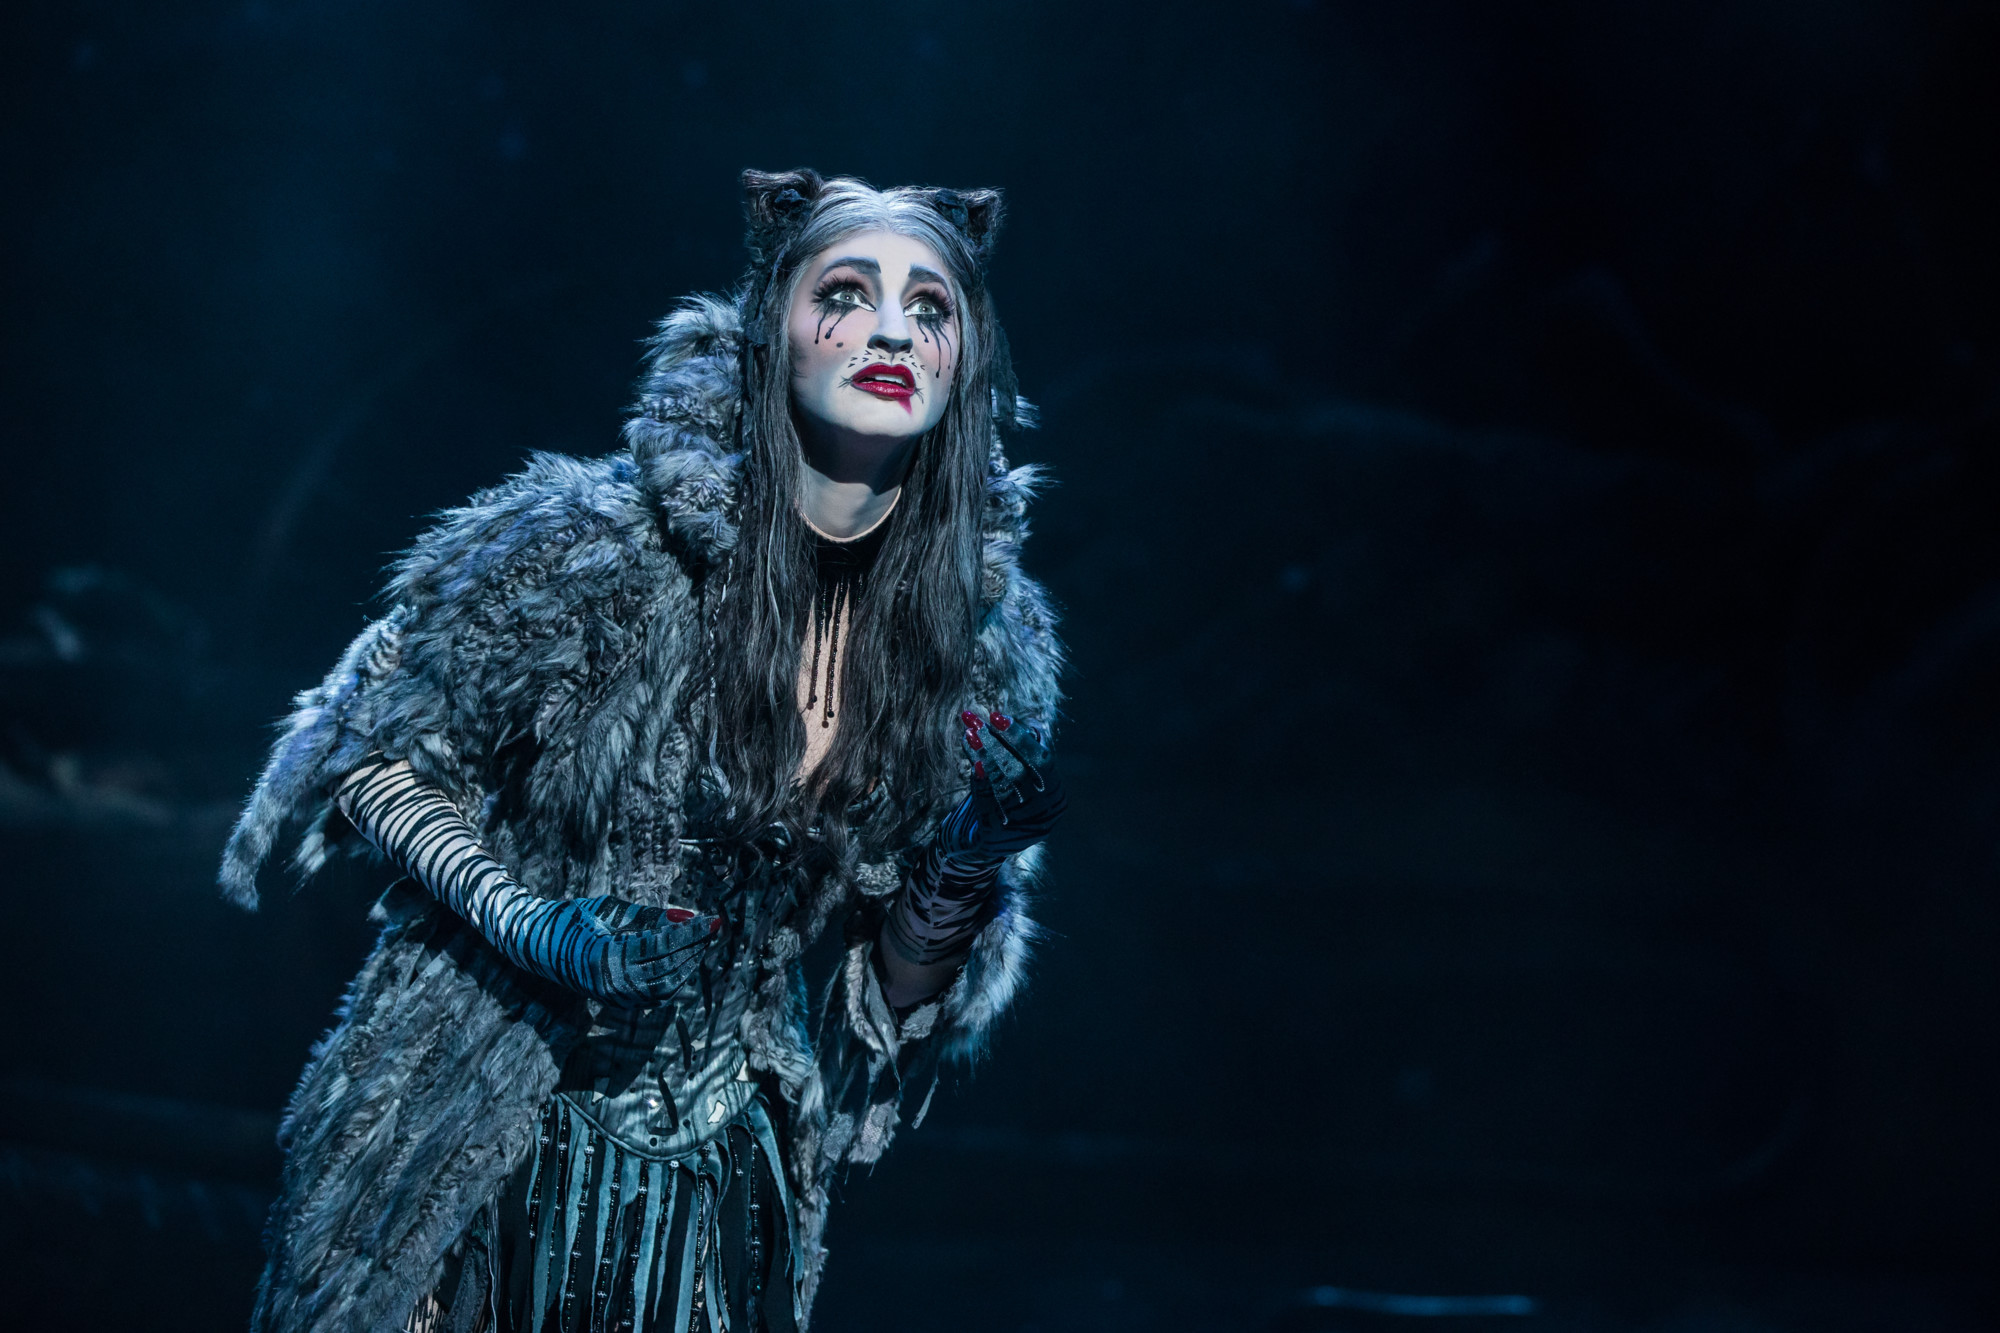 If you've had them, you know that cats can be very guilt-inducing when they desire attention, as Grizabella does here in 'Cats.' (photo: Matthew Murphy)